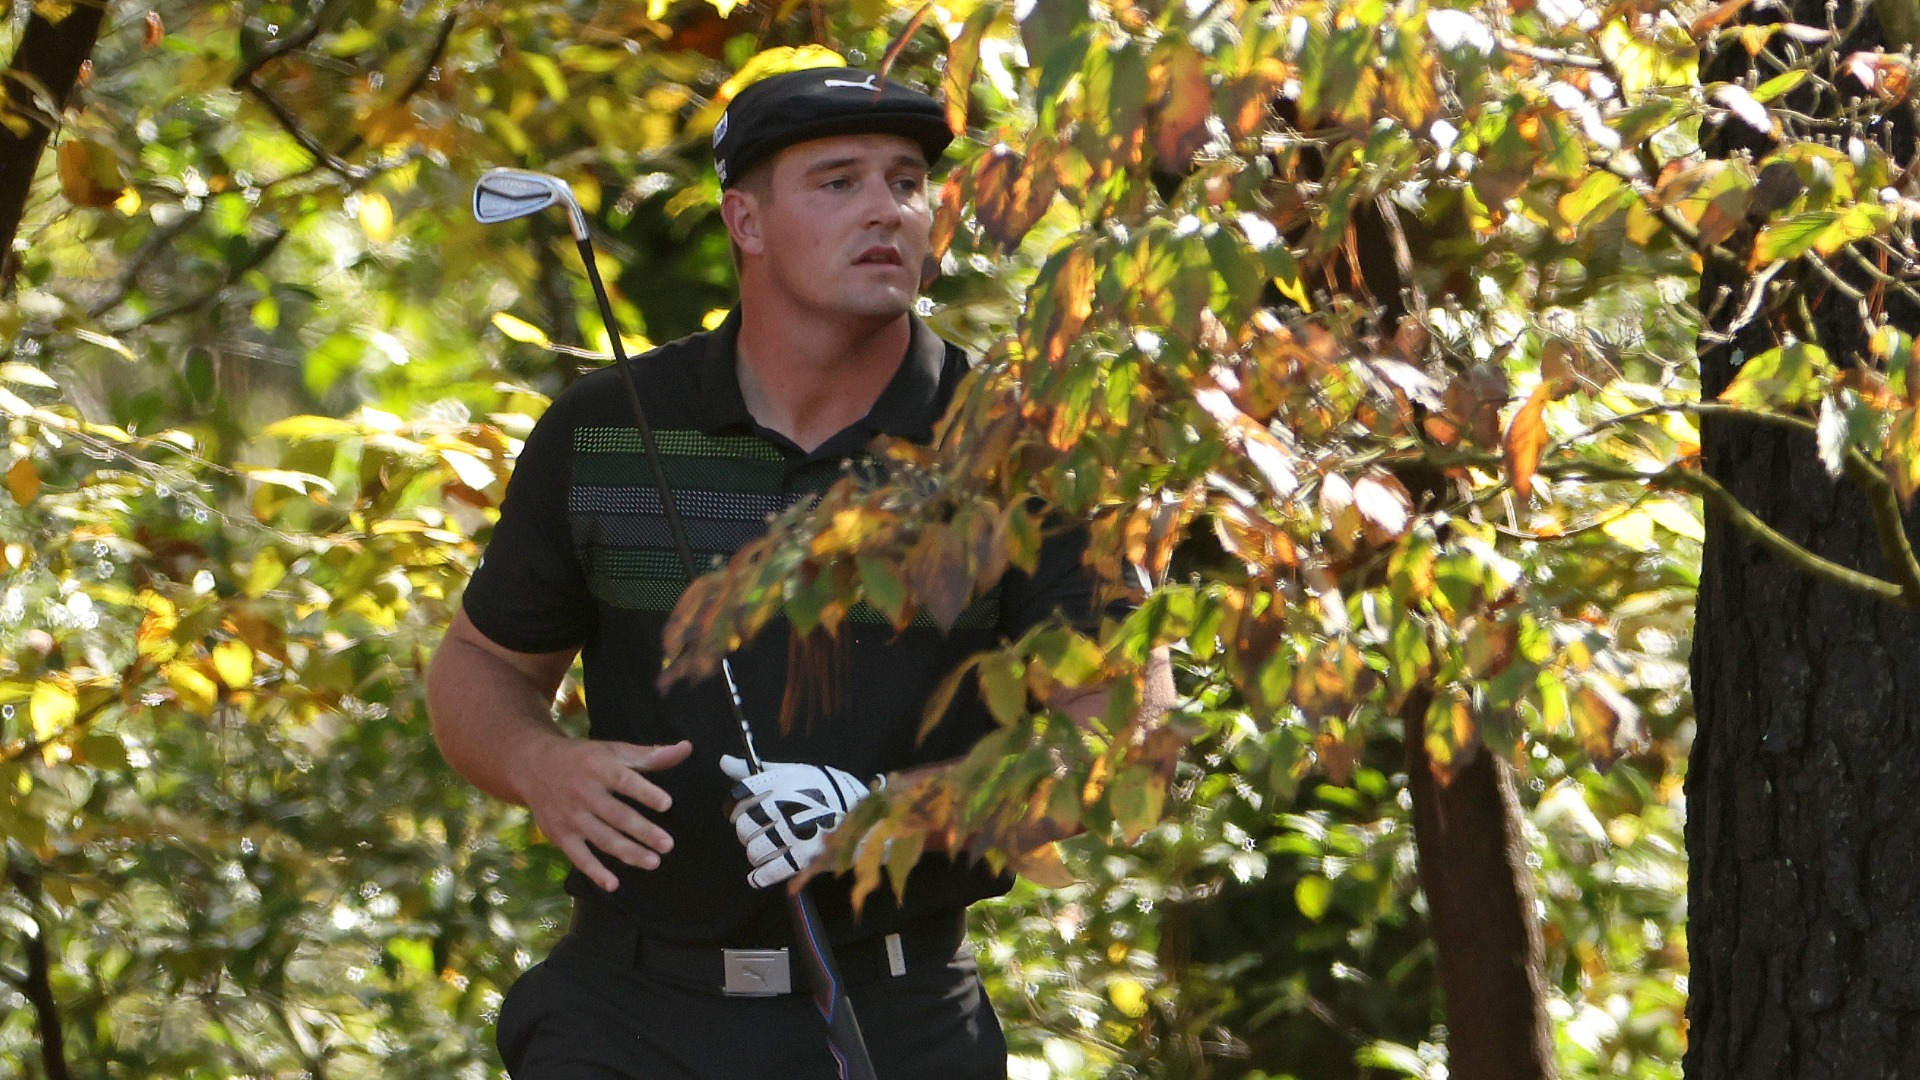 The Masters: 'Greedy' Bryson DeChambeau recovers after Augusta bites back